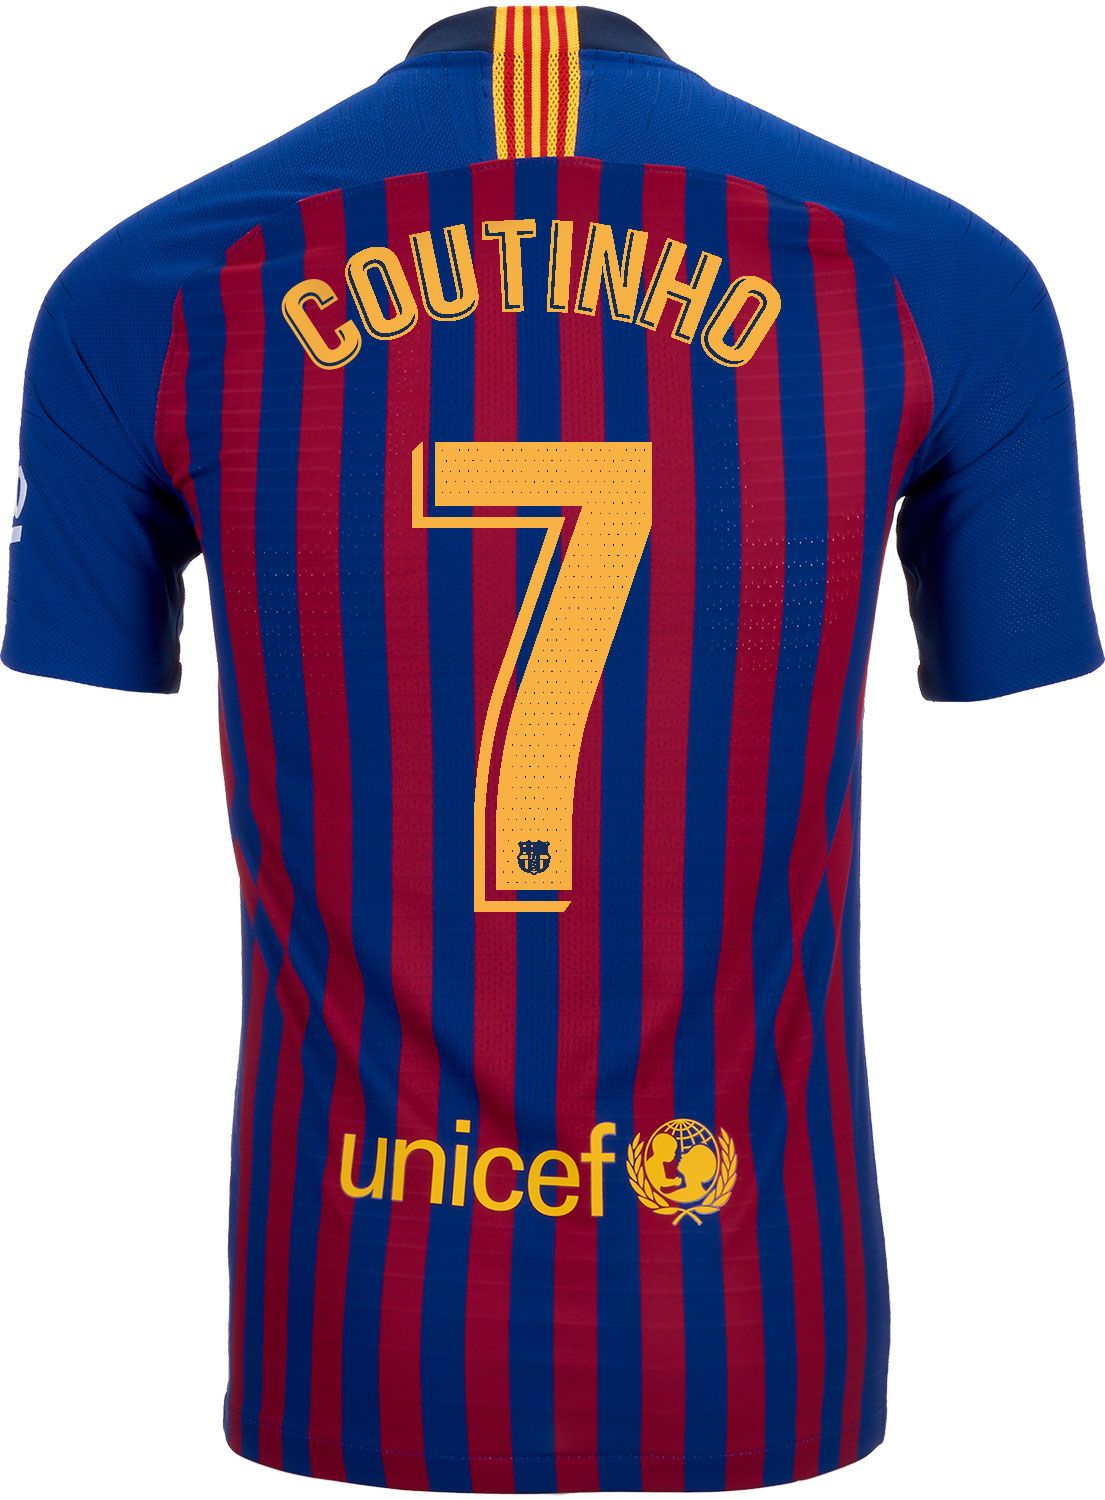 36adc8c05db 2018 19 Nike FC Barcelona Philippe Coutinho Home Jersey. Buy it from  SoccerPro.